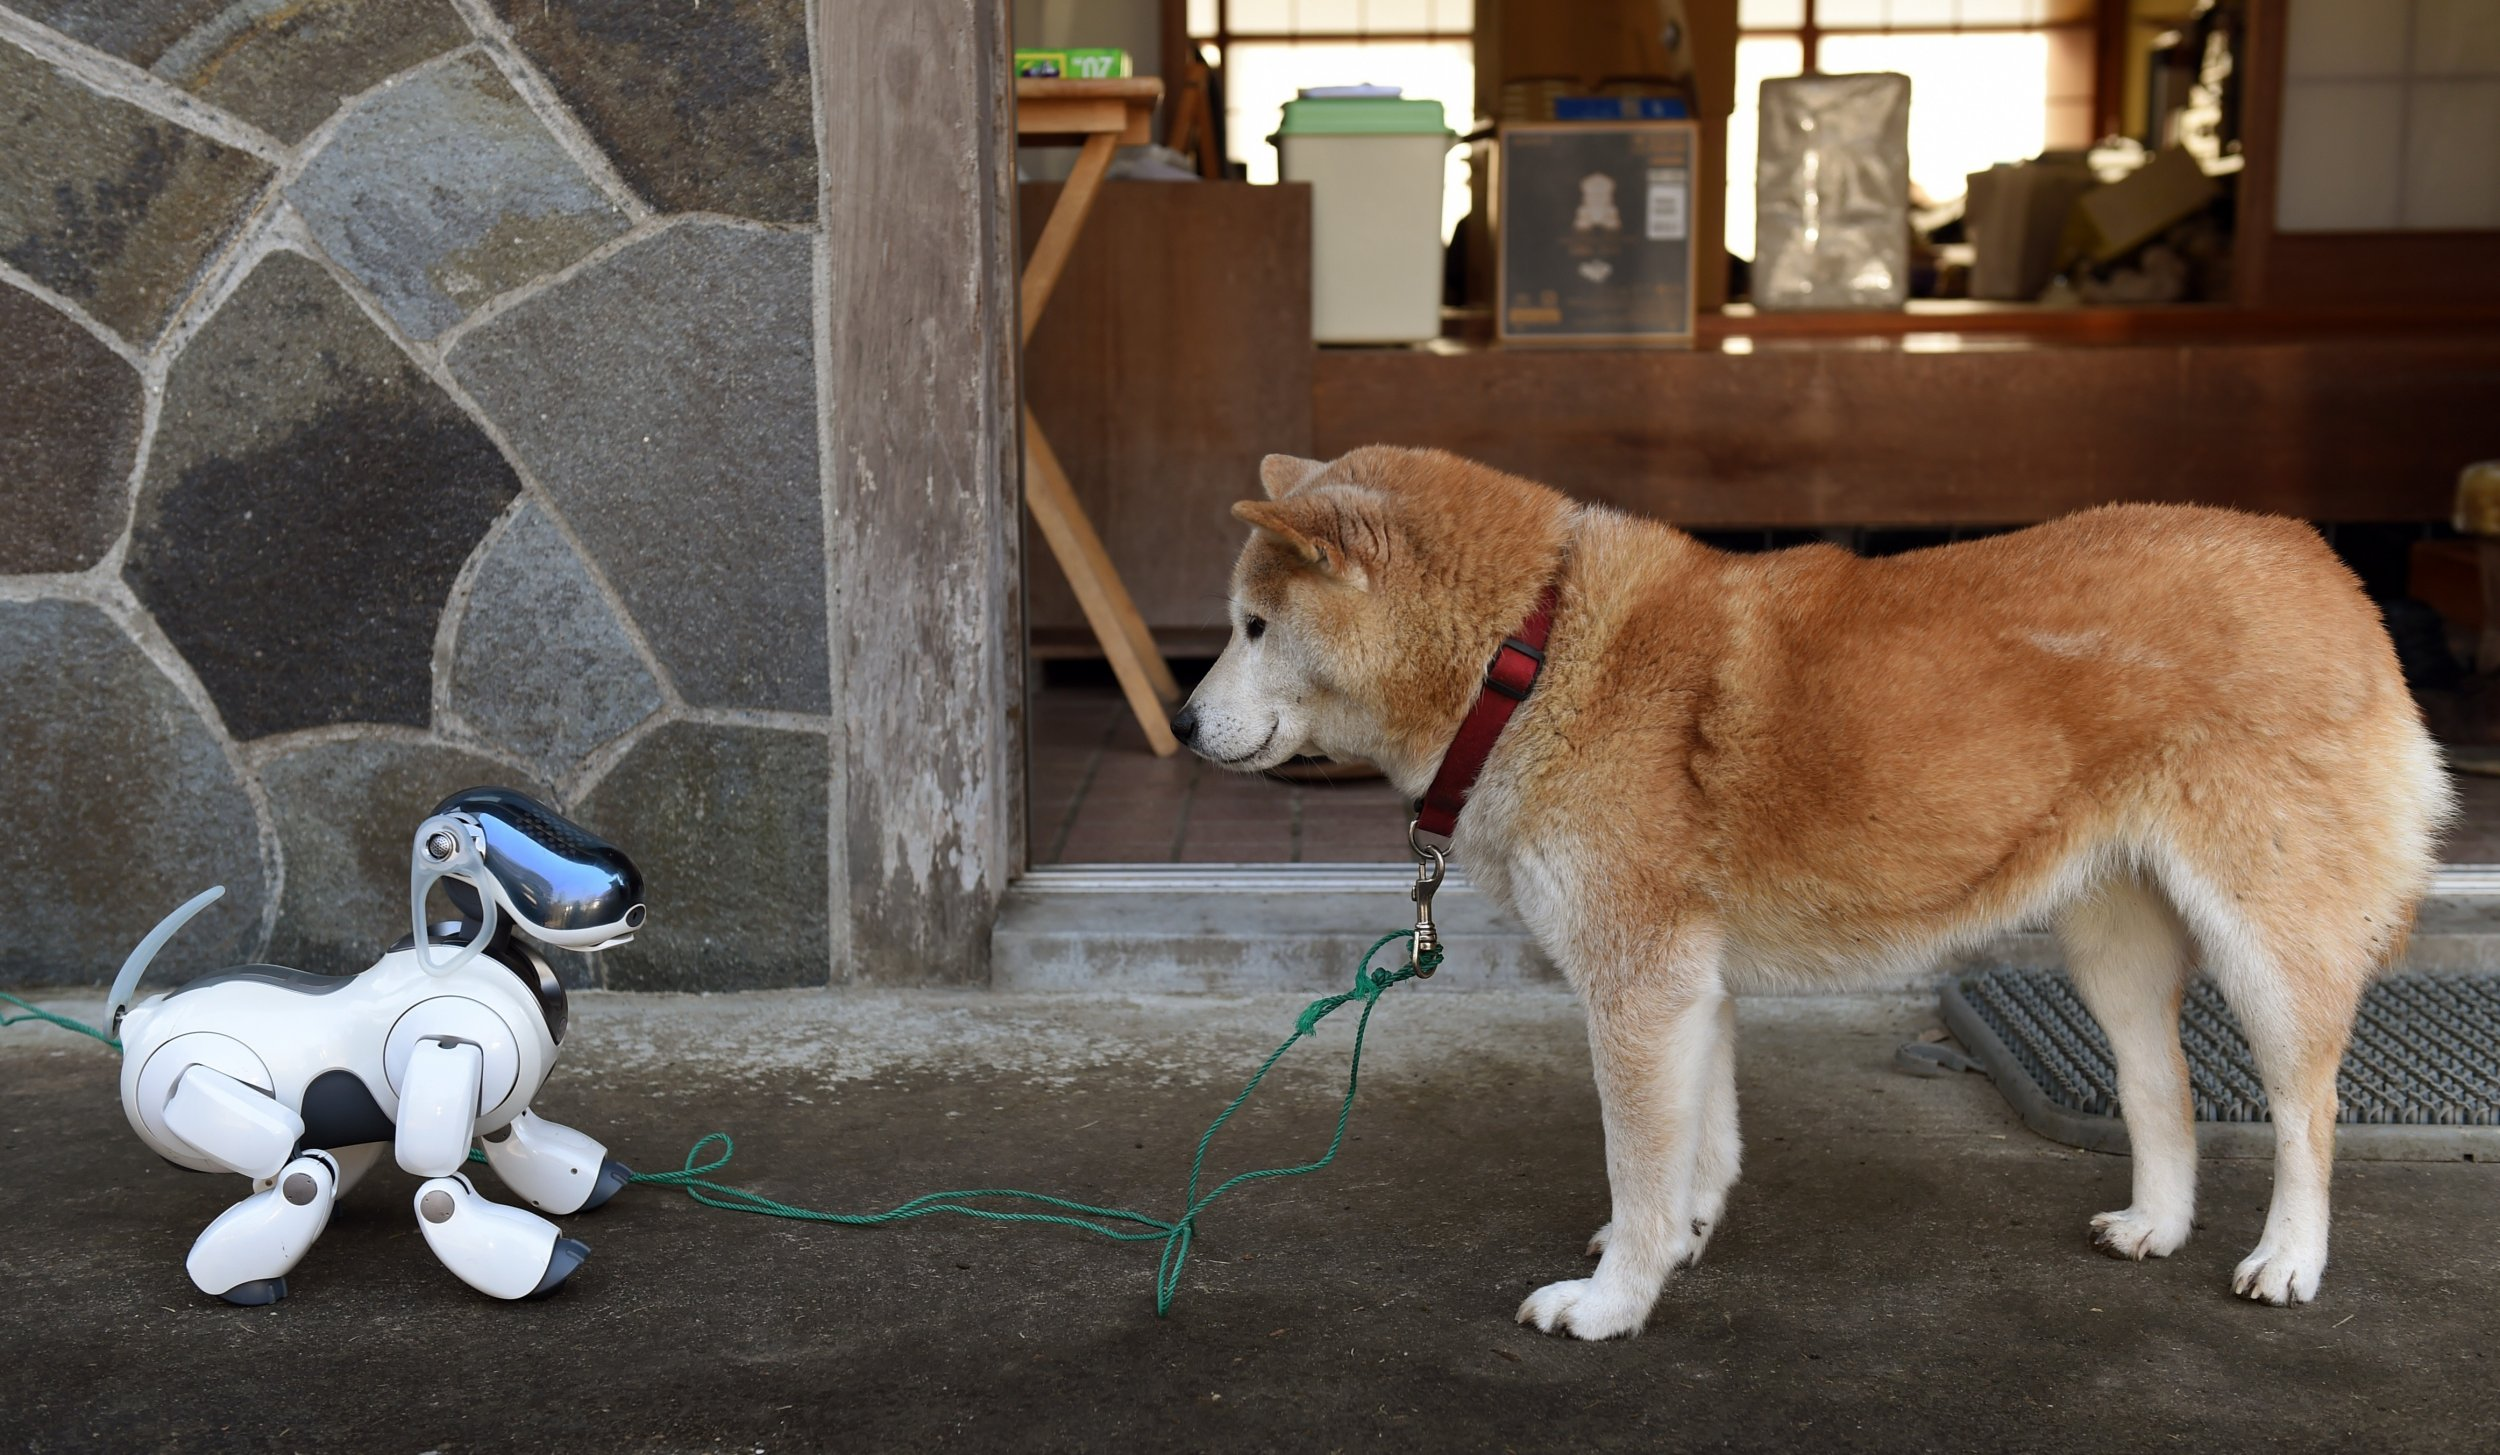 Japan S Robot Dogs Get Funerals As Sony Looks Away